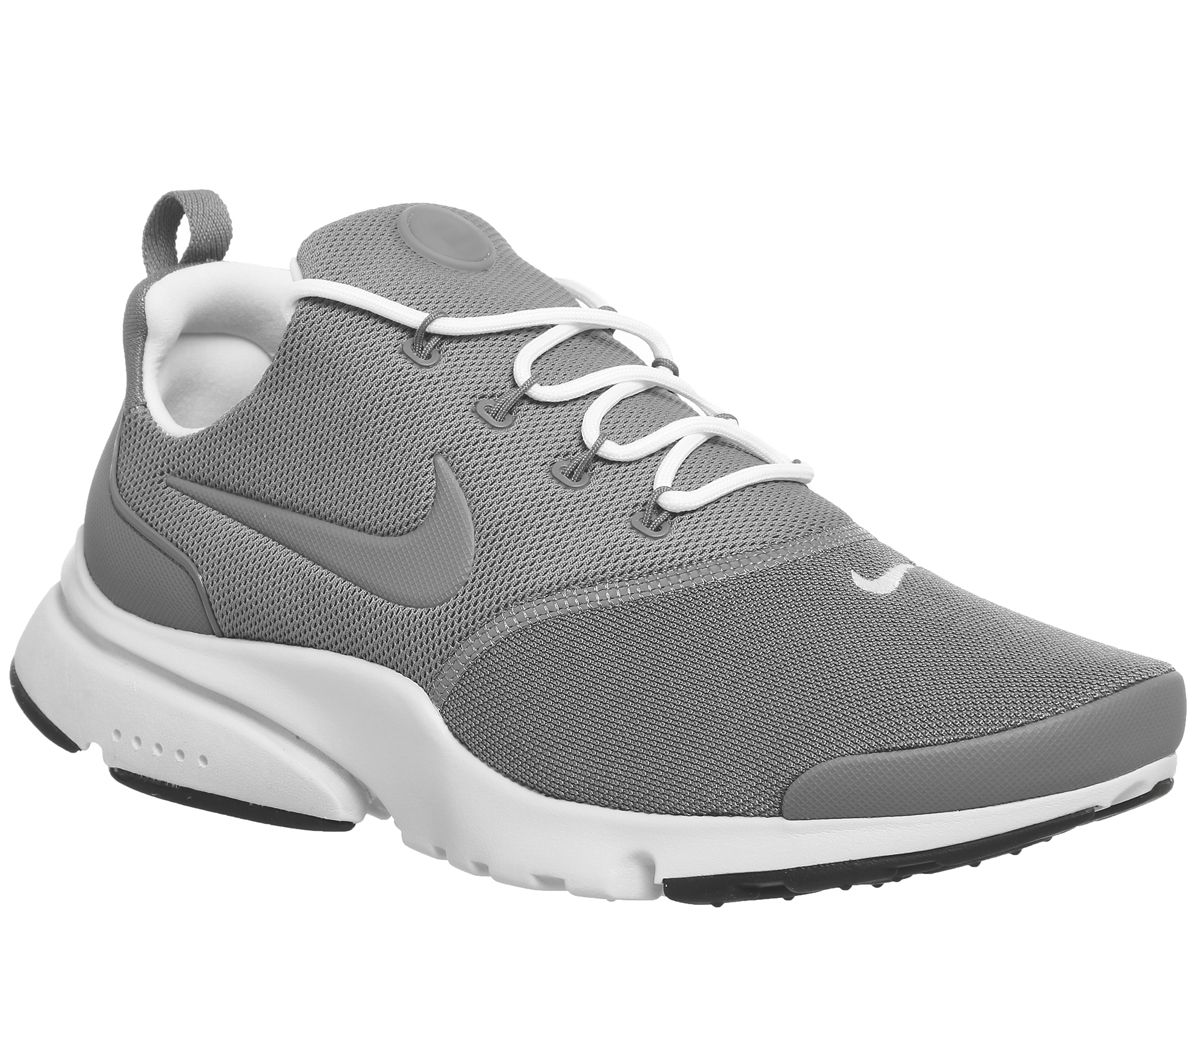 711ef0873a4b Nike Presto Fly Trainers Grey White - Hers trainers